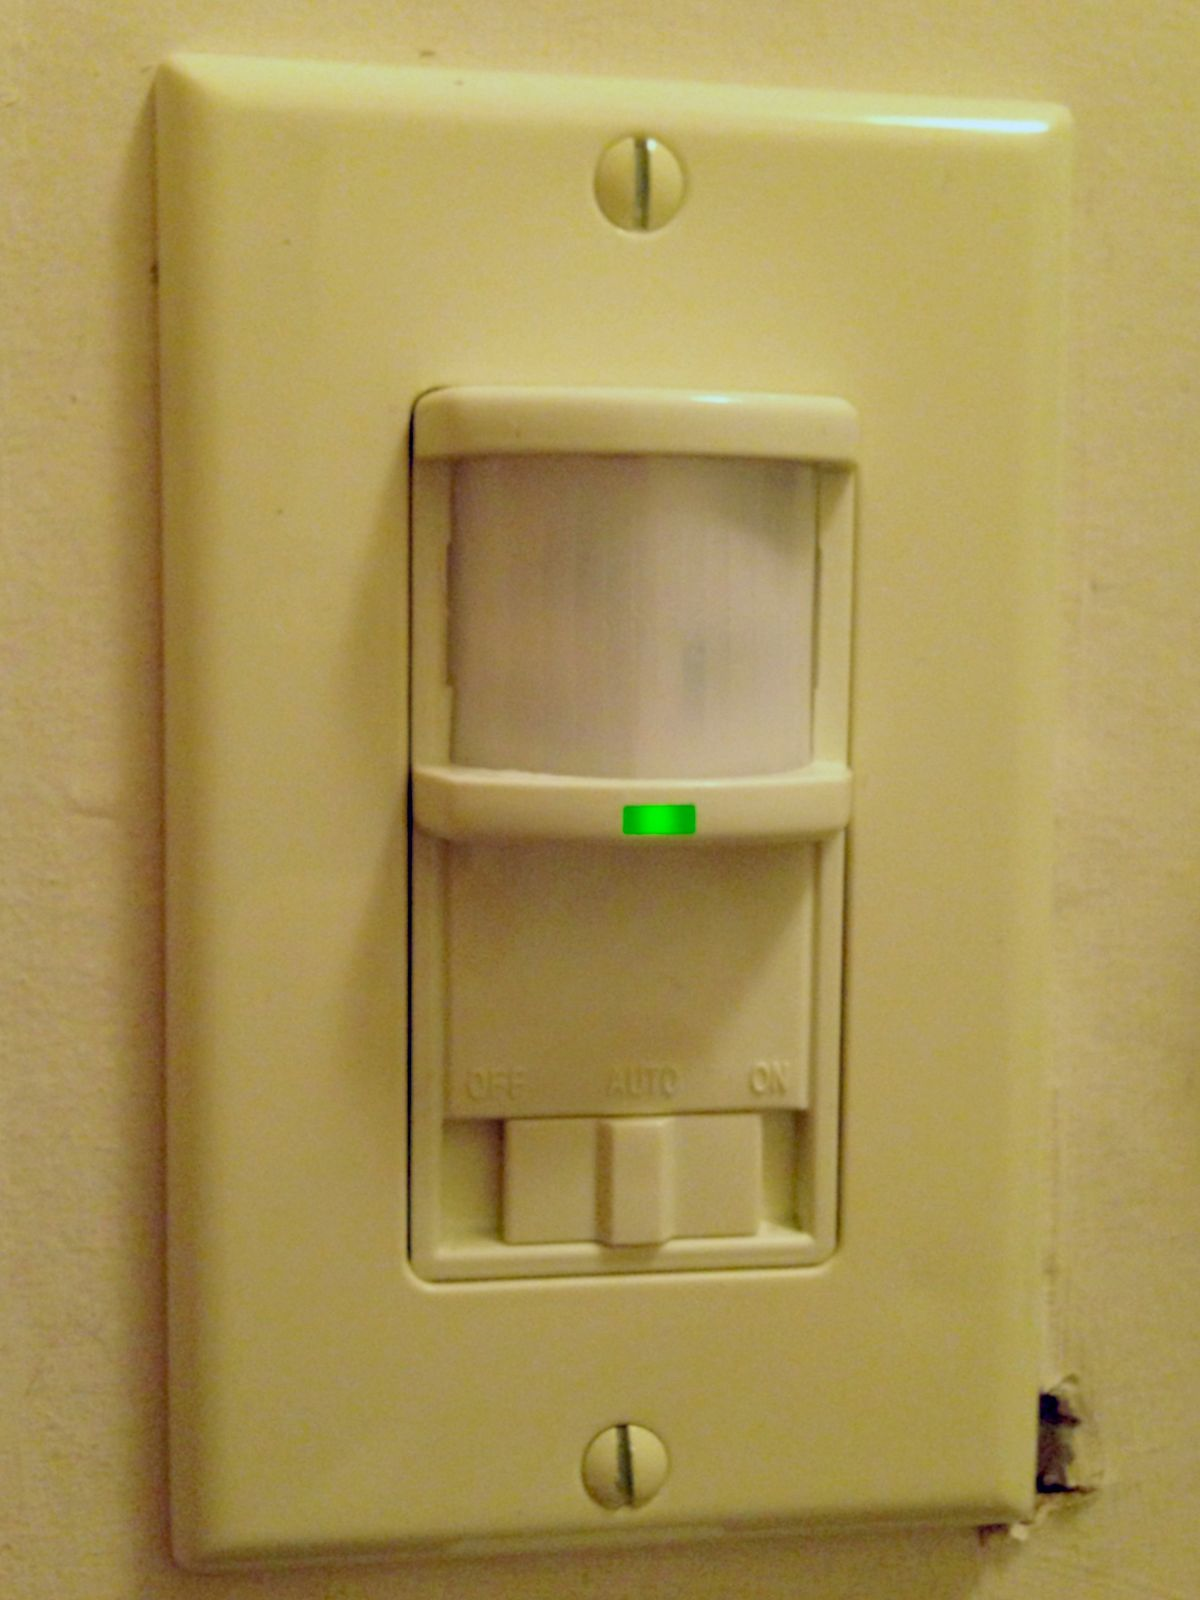 Occupancy Sensor Wikipedia Reed Switches And Hall Effect Sensors